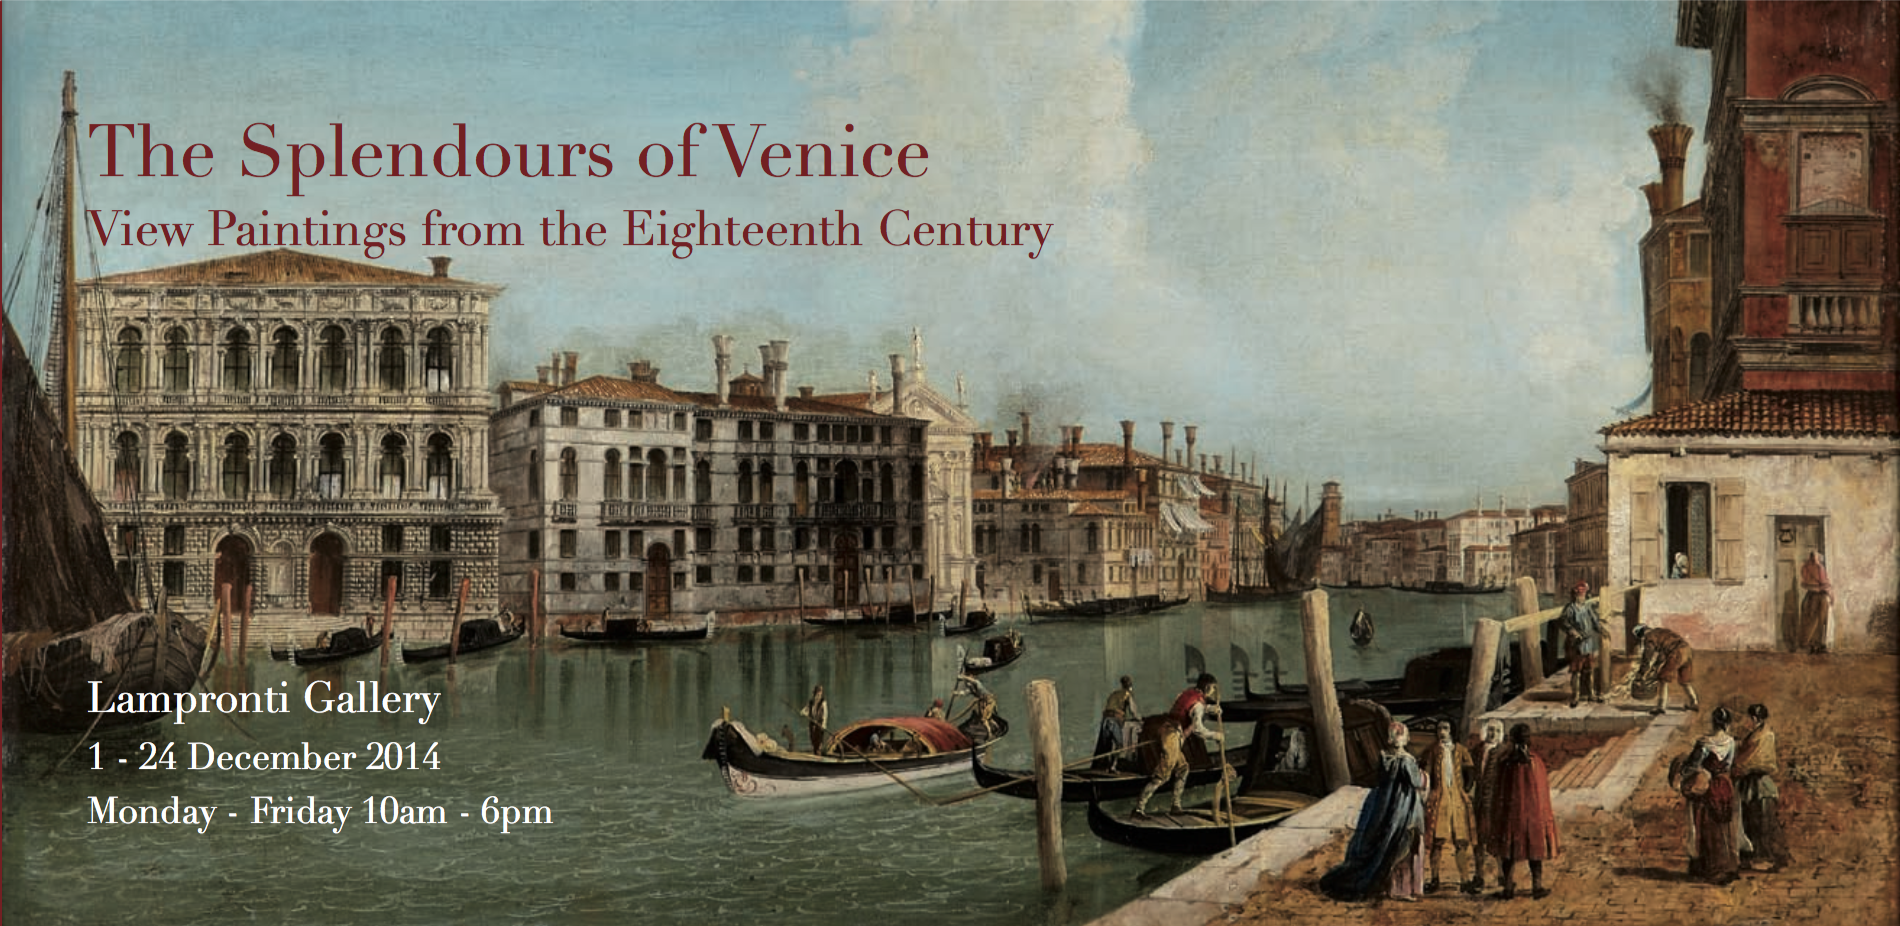 The Splendours of Venice: view paintings from the Eighteenth Century    London, 1-24 December, 2014